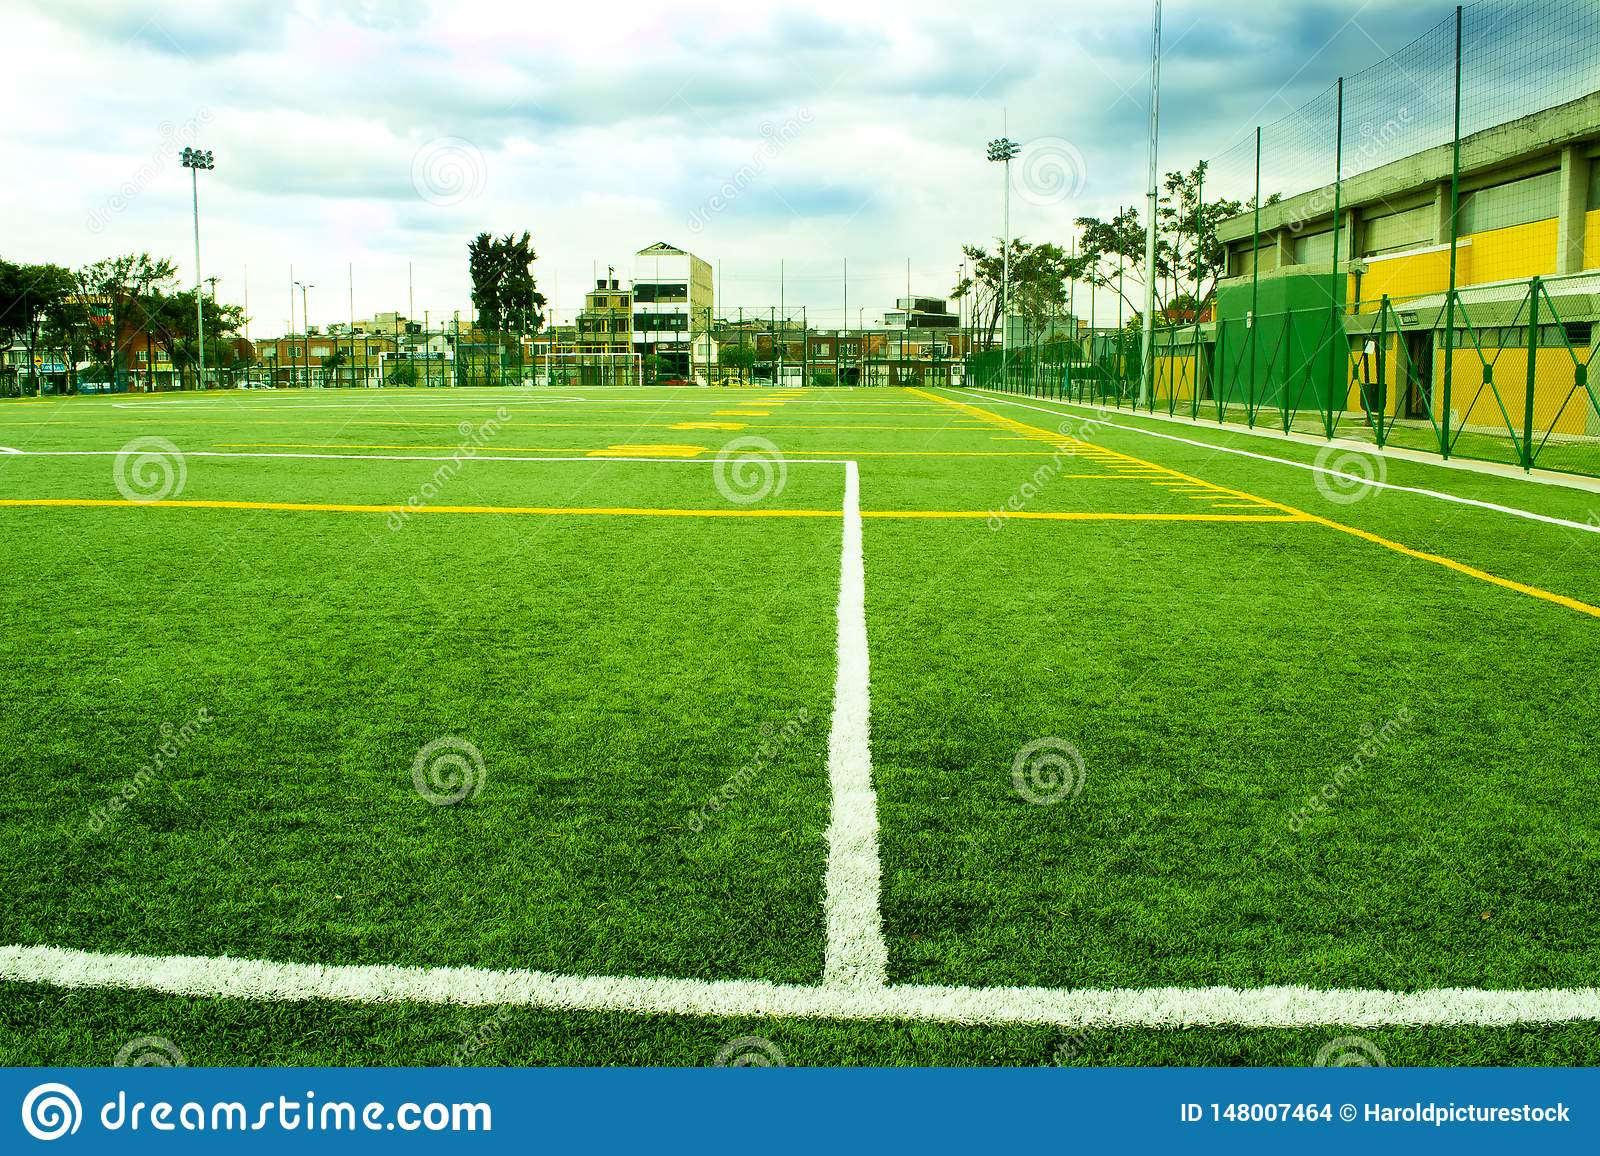 Soccer and Fooball Area Field